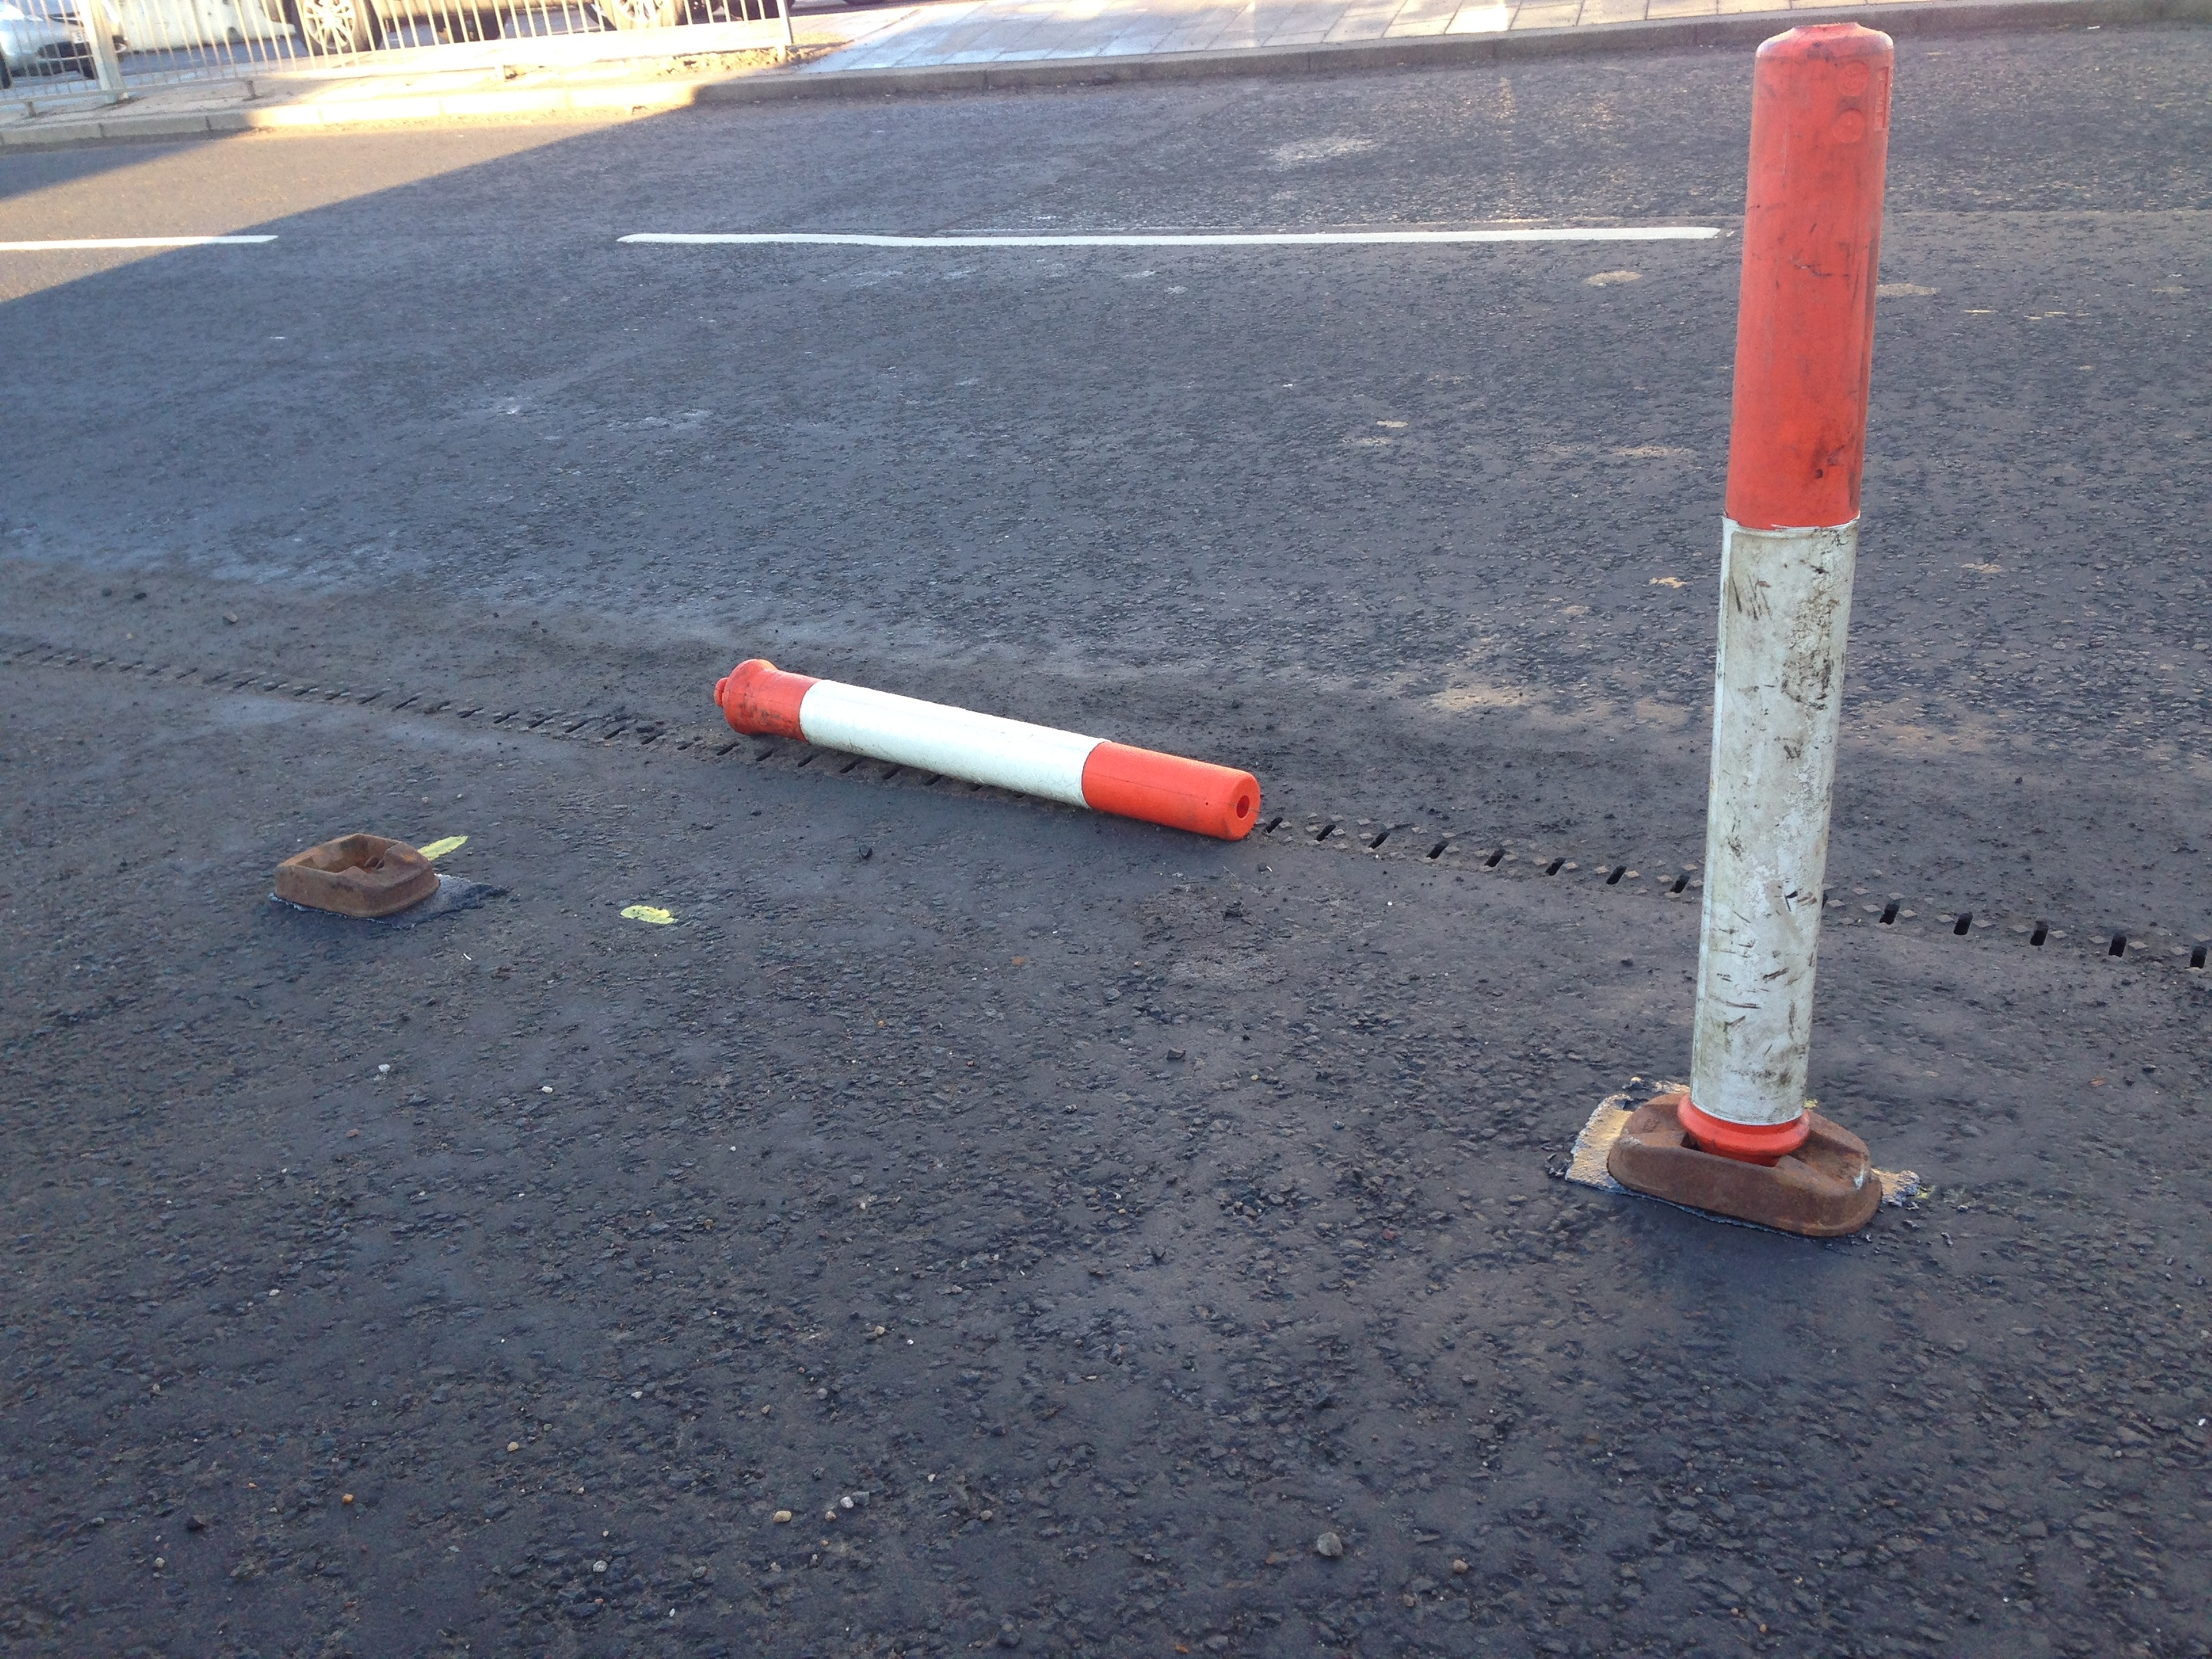 One of the bollards was removed from its base.